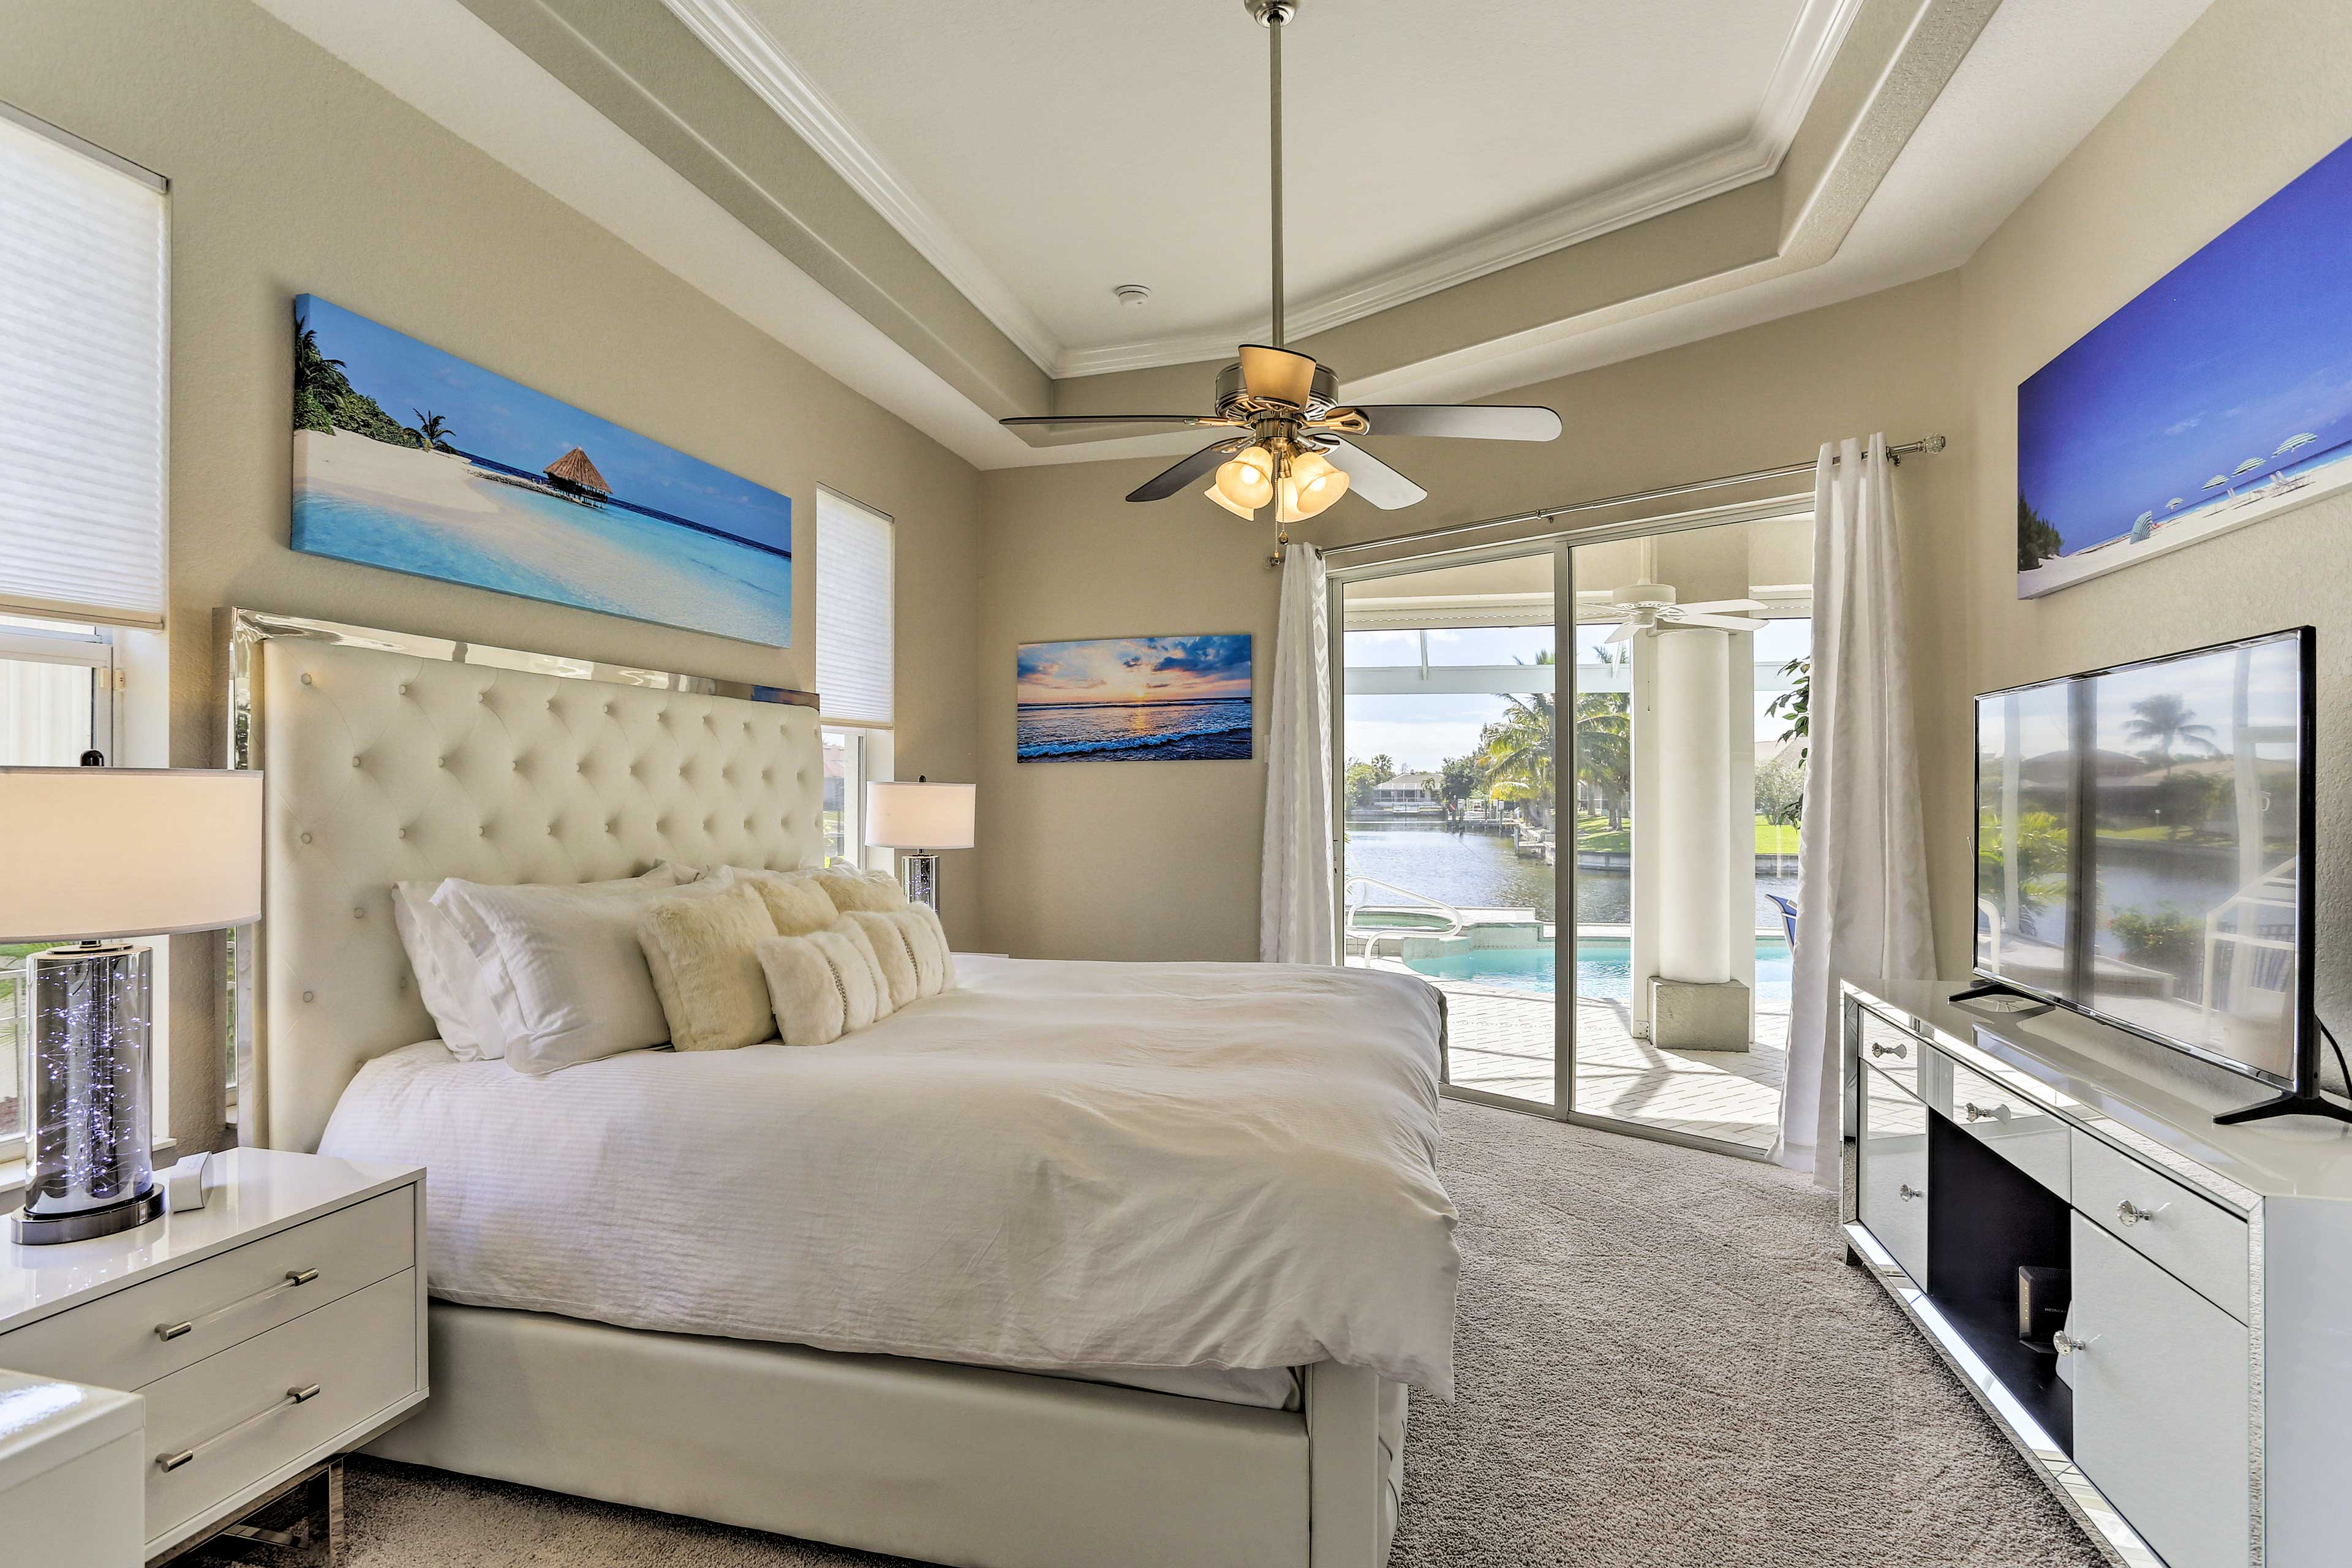 The house features 3 tastefully furnished bedrooms.